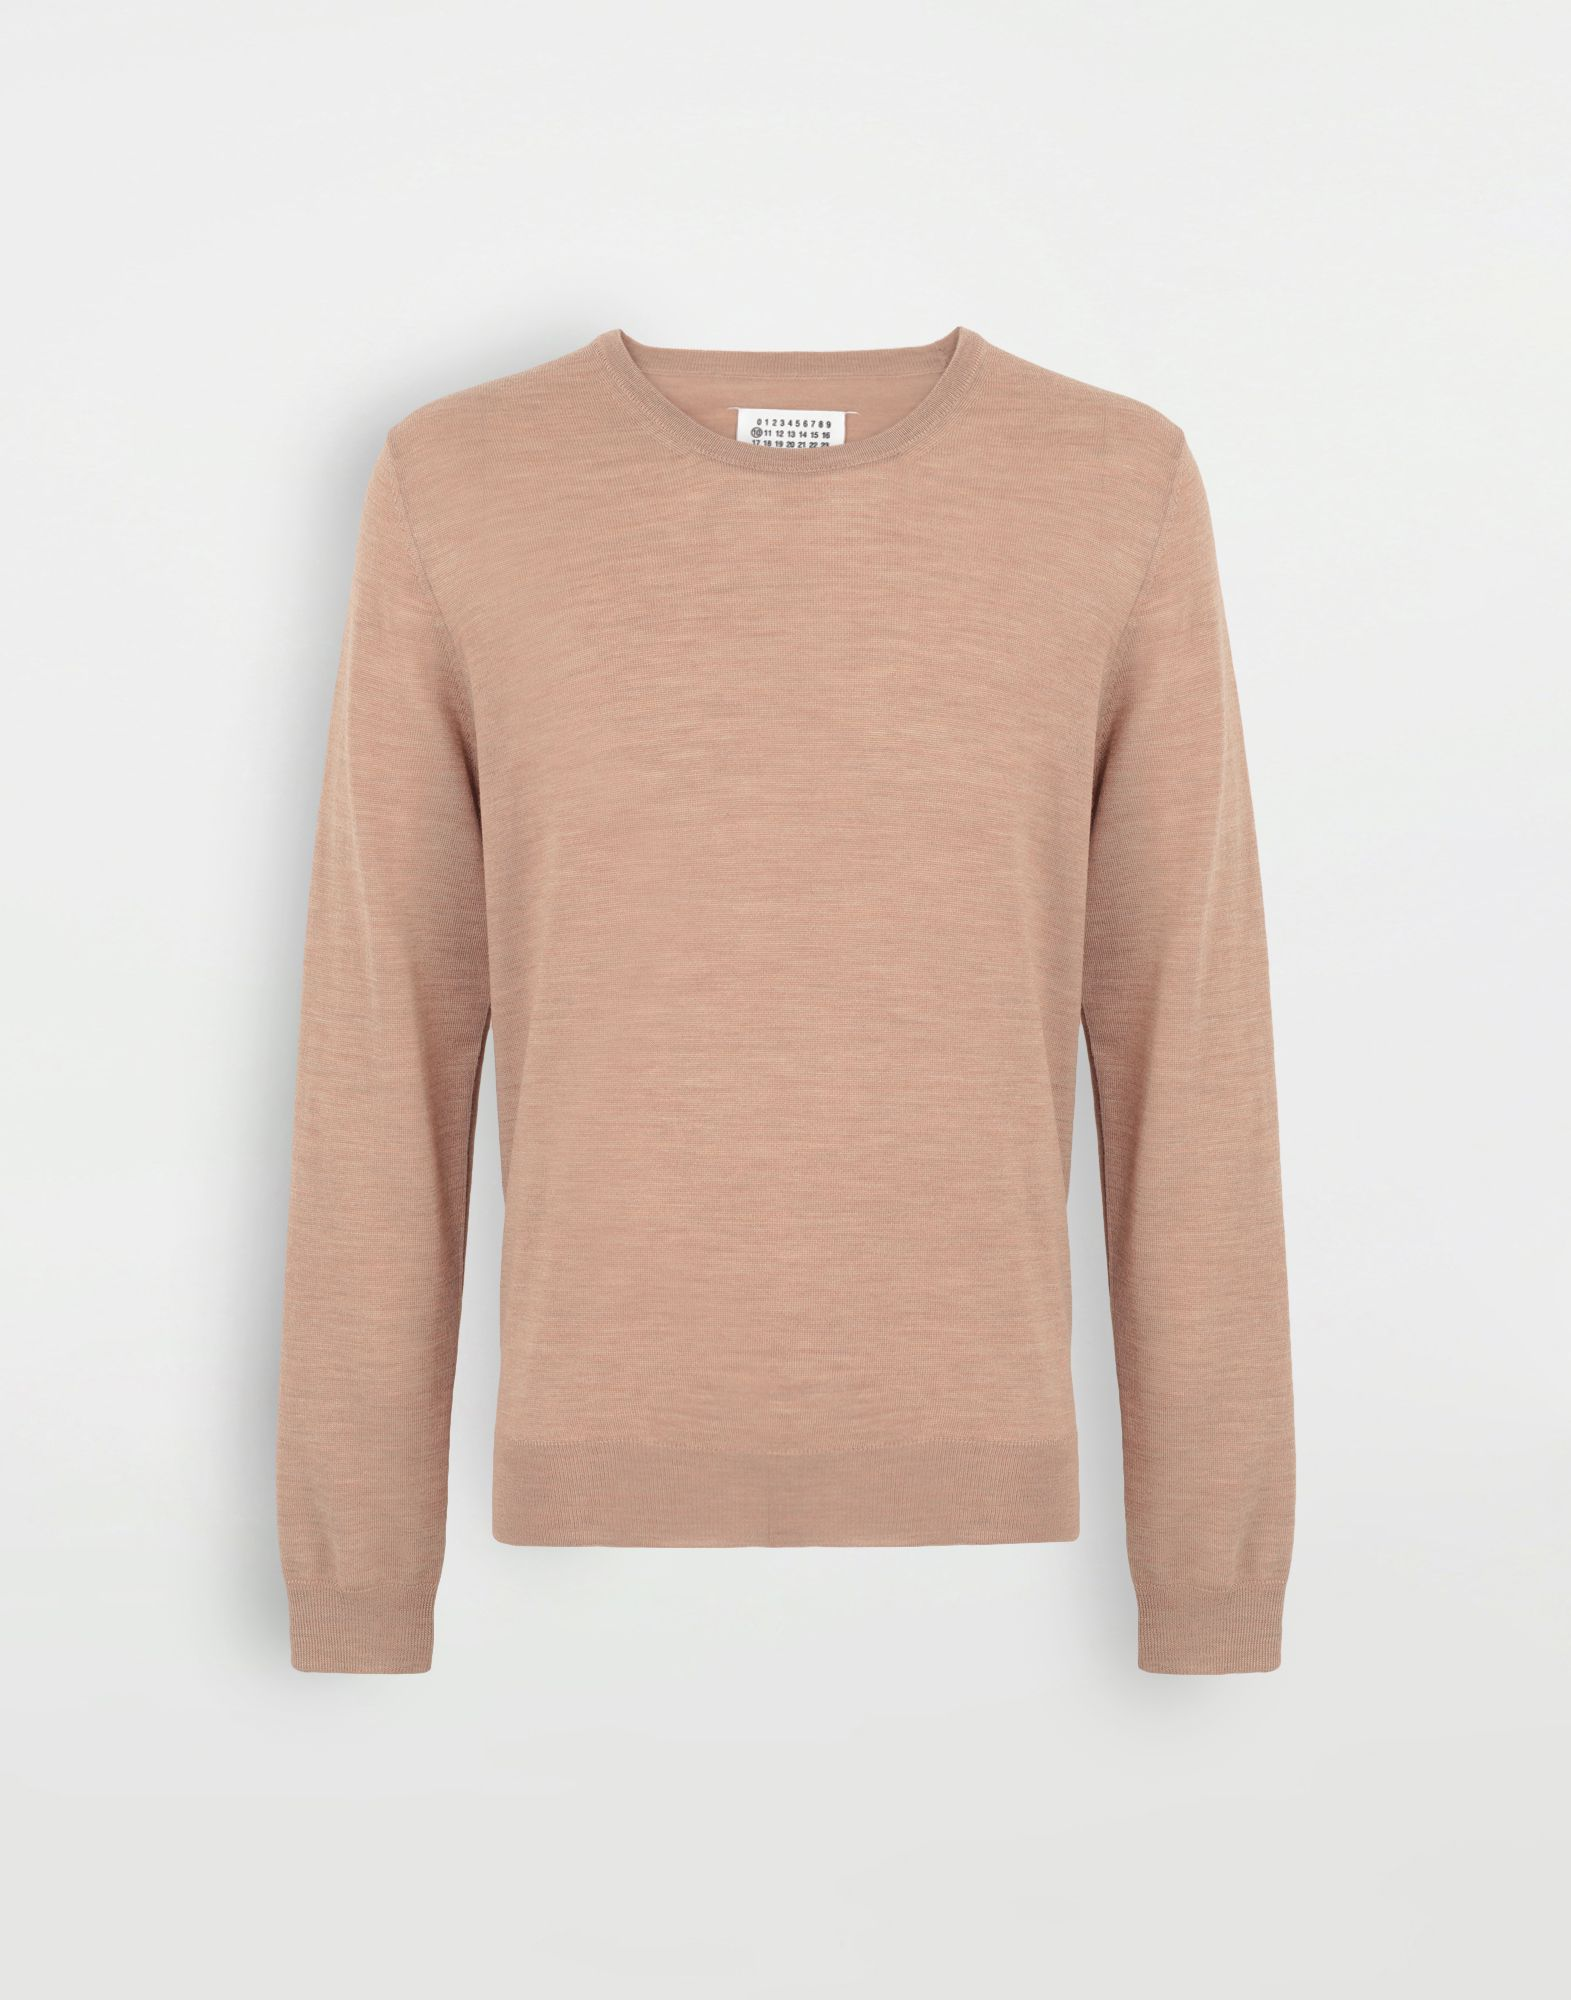 MAISON MARGIELA Wool sweater Crewneck Man f